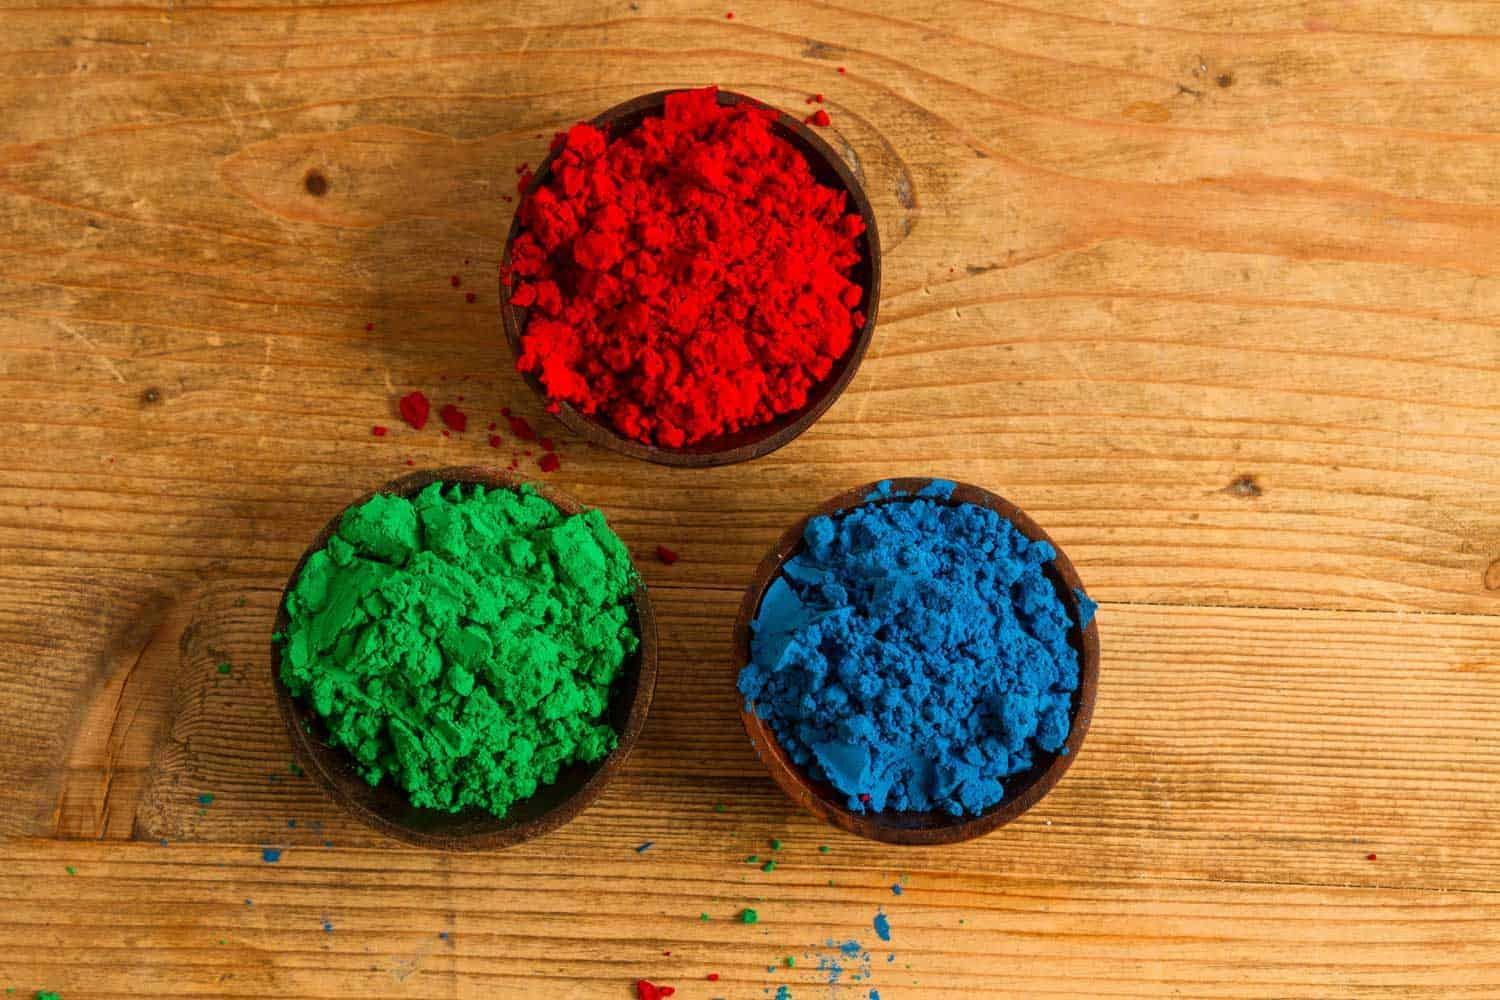 Real world representation of RGB colours, with powdered Indian pigments.